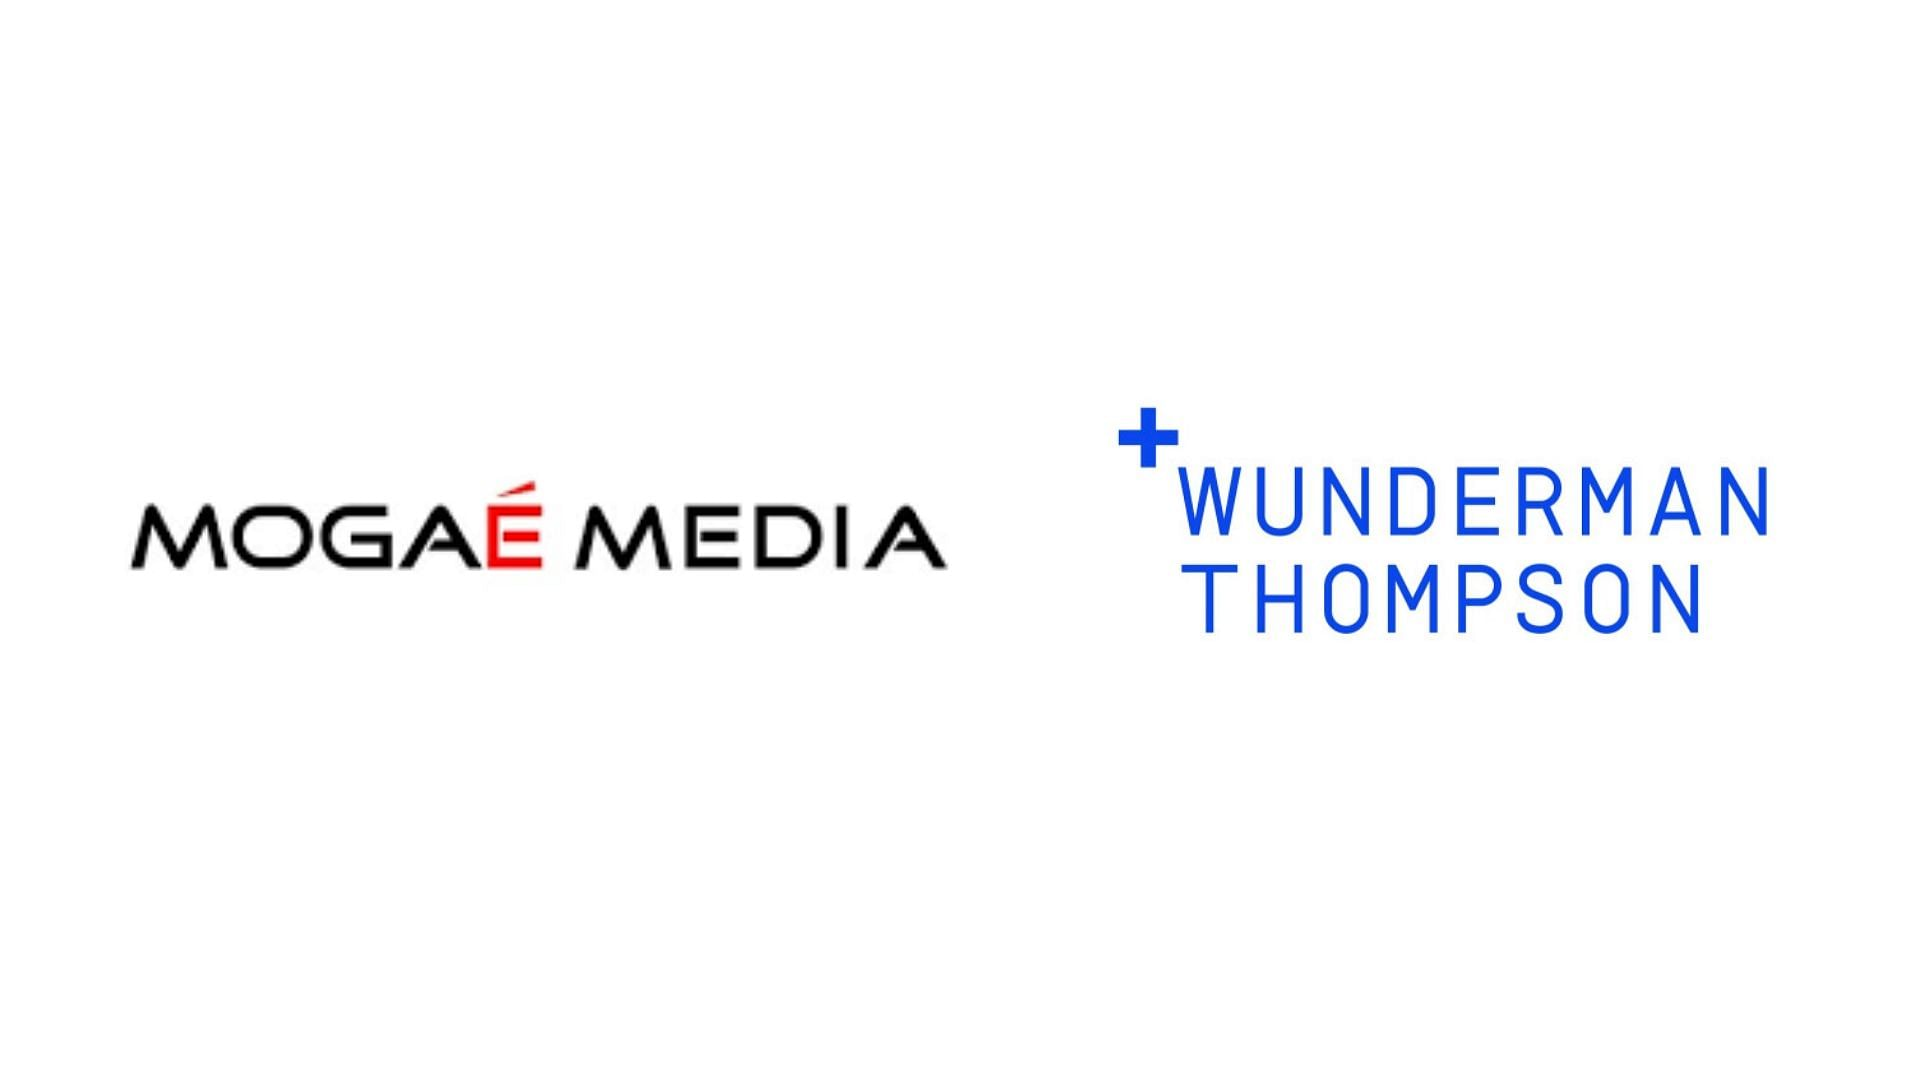 mogae media wunderman thompson